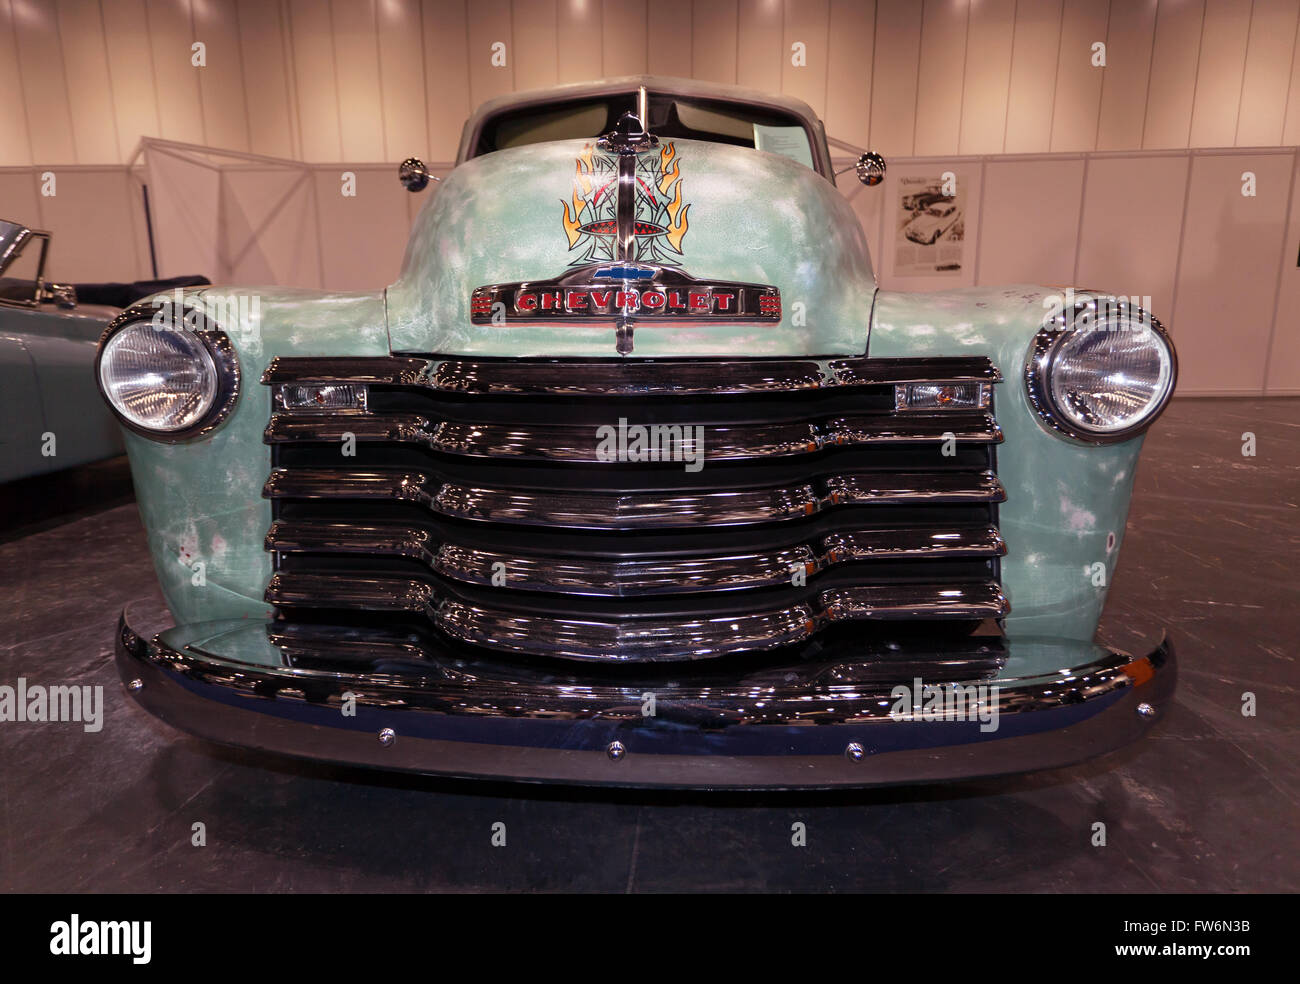 Hot Rod Radiator Grill Stock Photos 1949 Chevy Pickup Front View Of A Custom Built Based On Vintage Chevrolet Truck